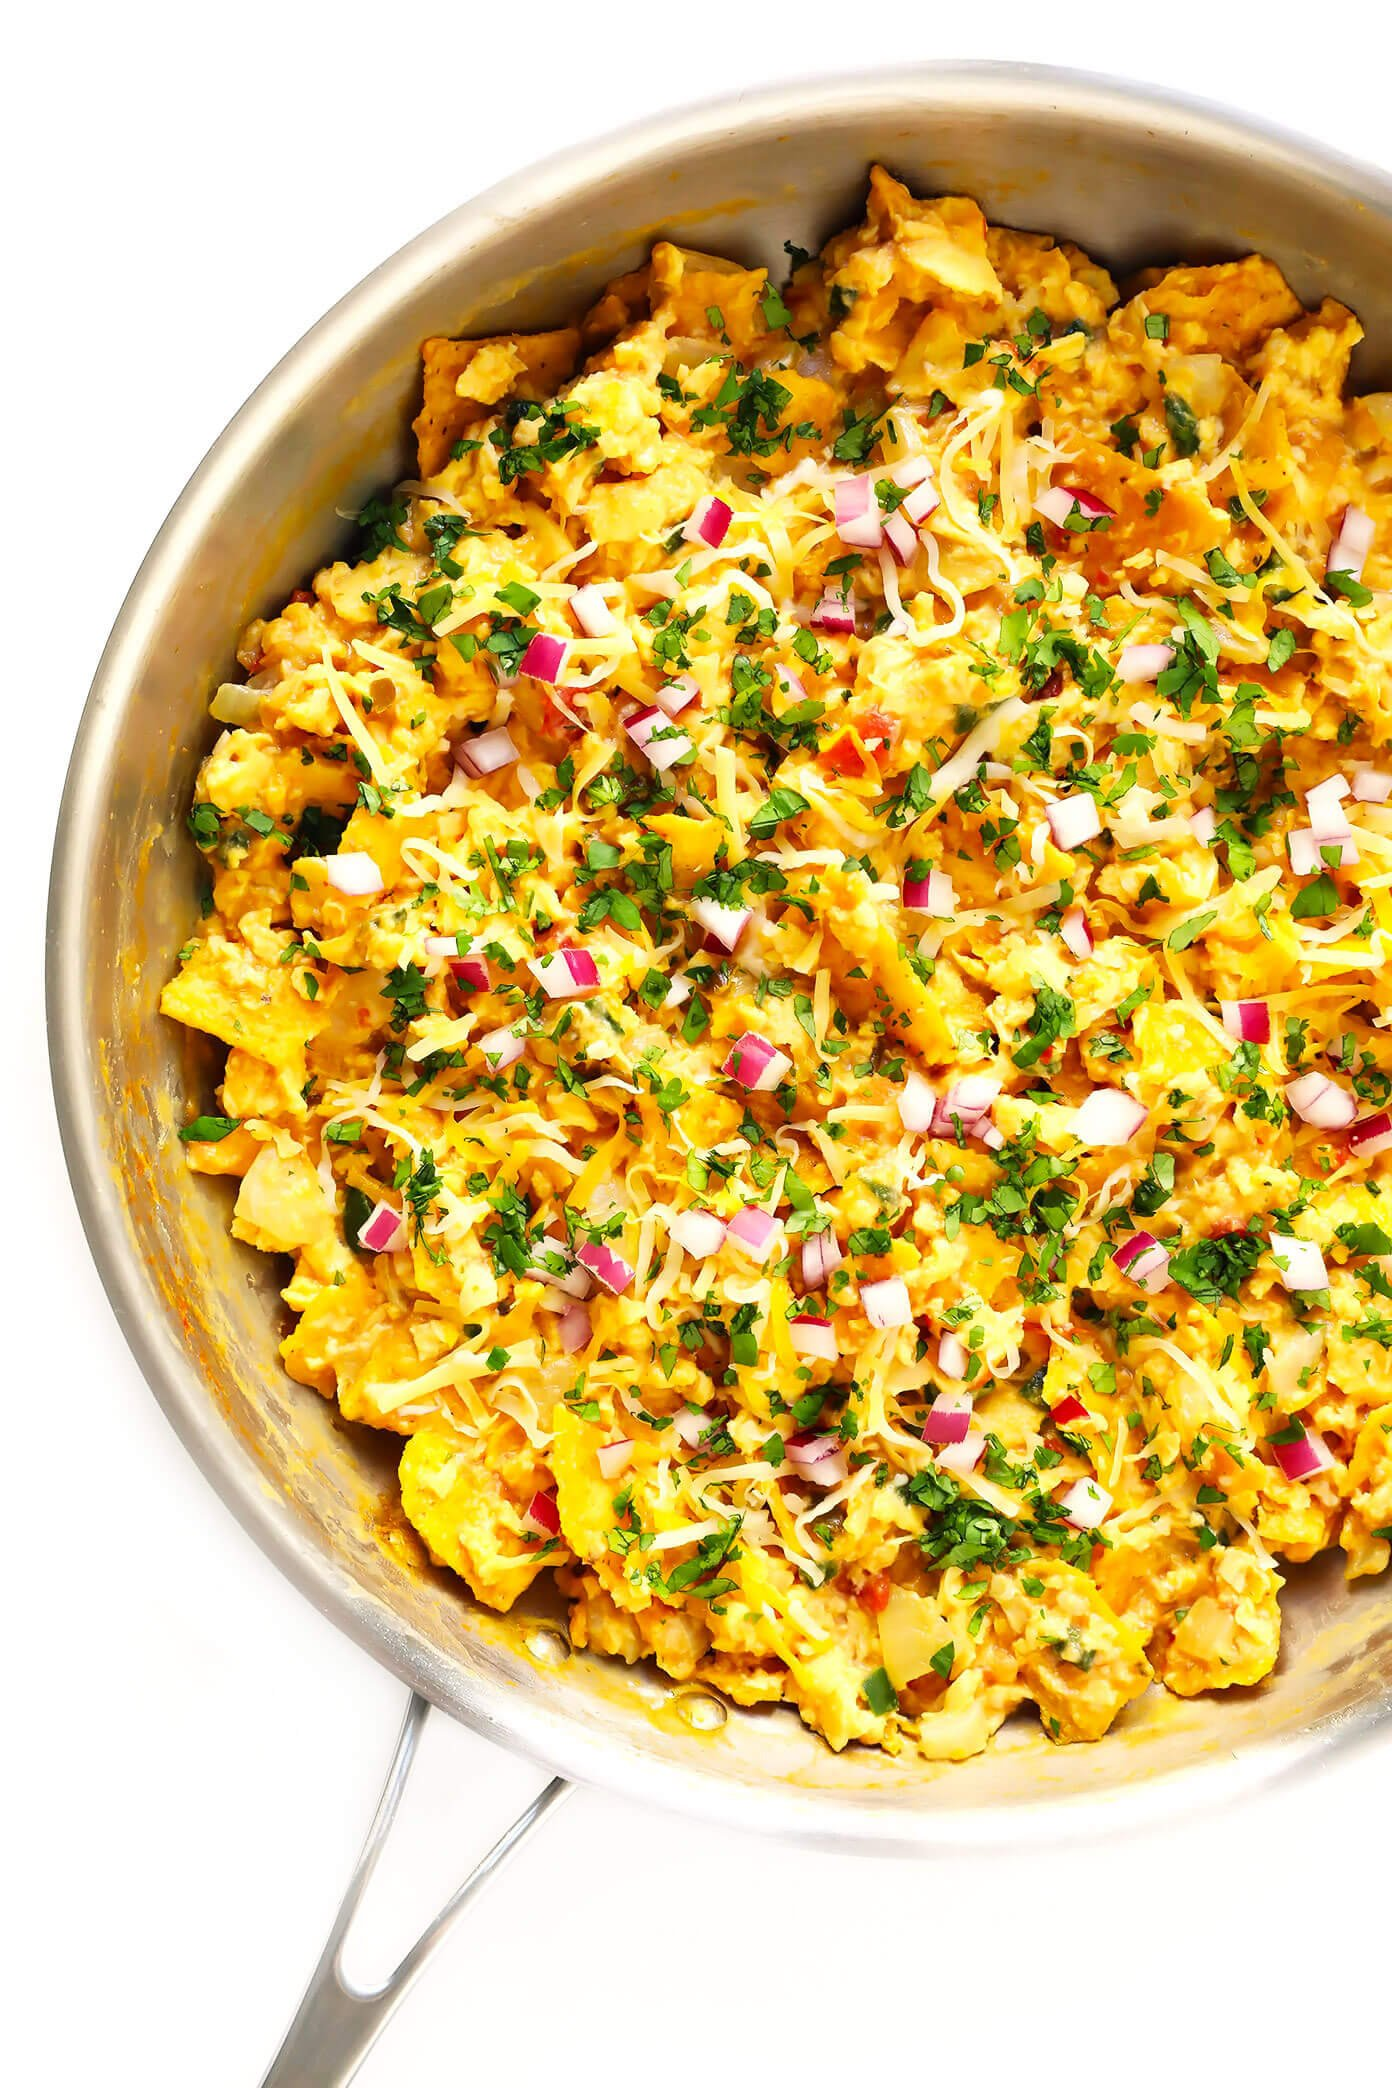 How To Make Migas